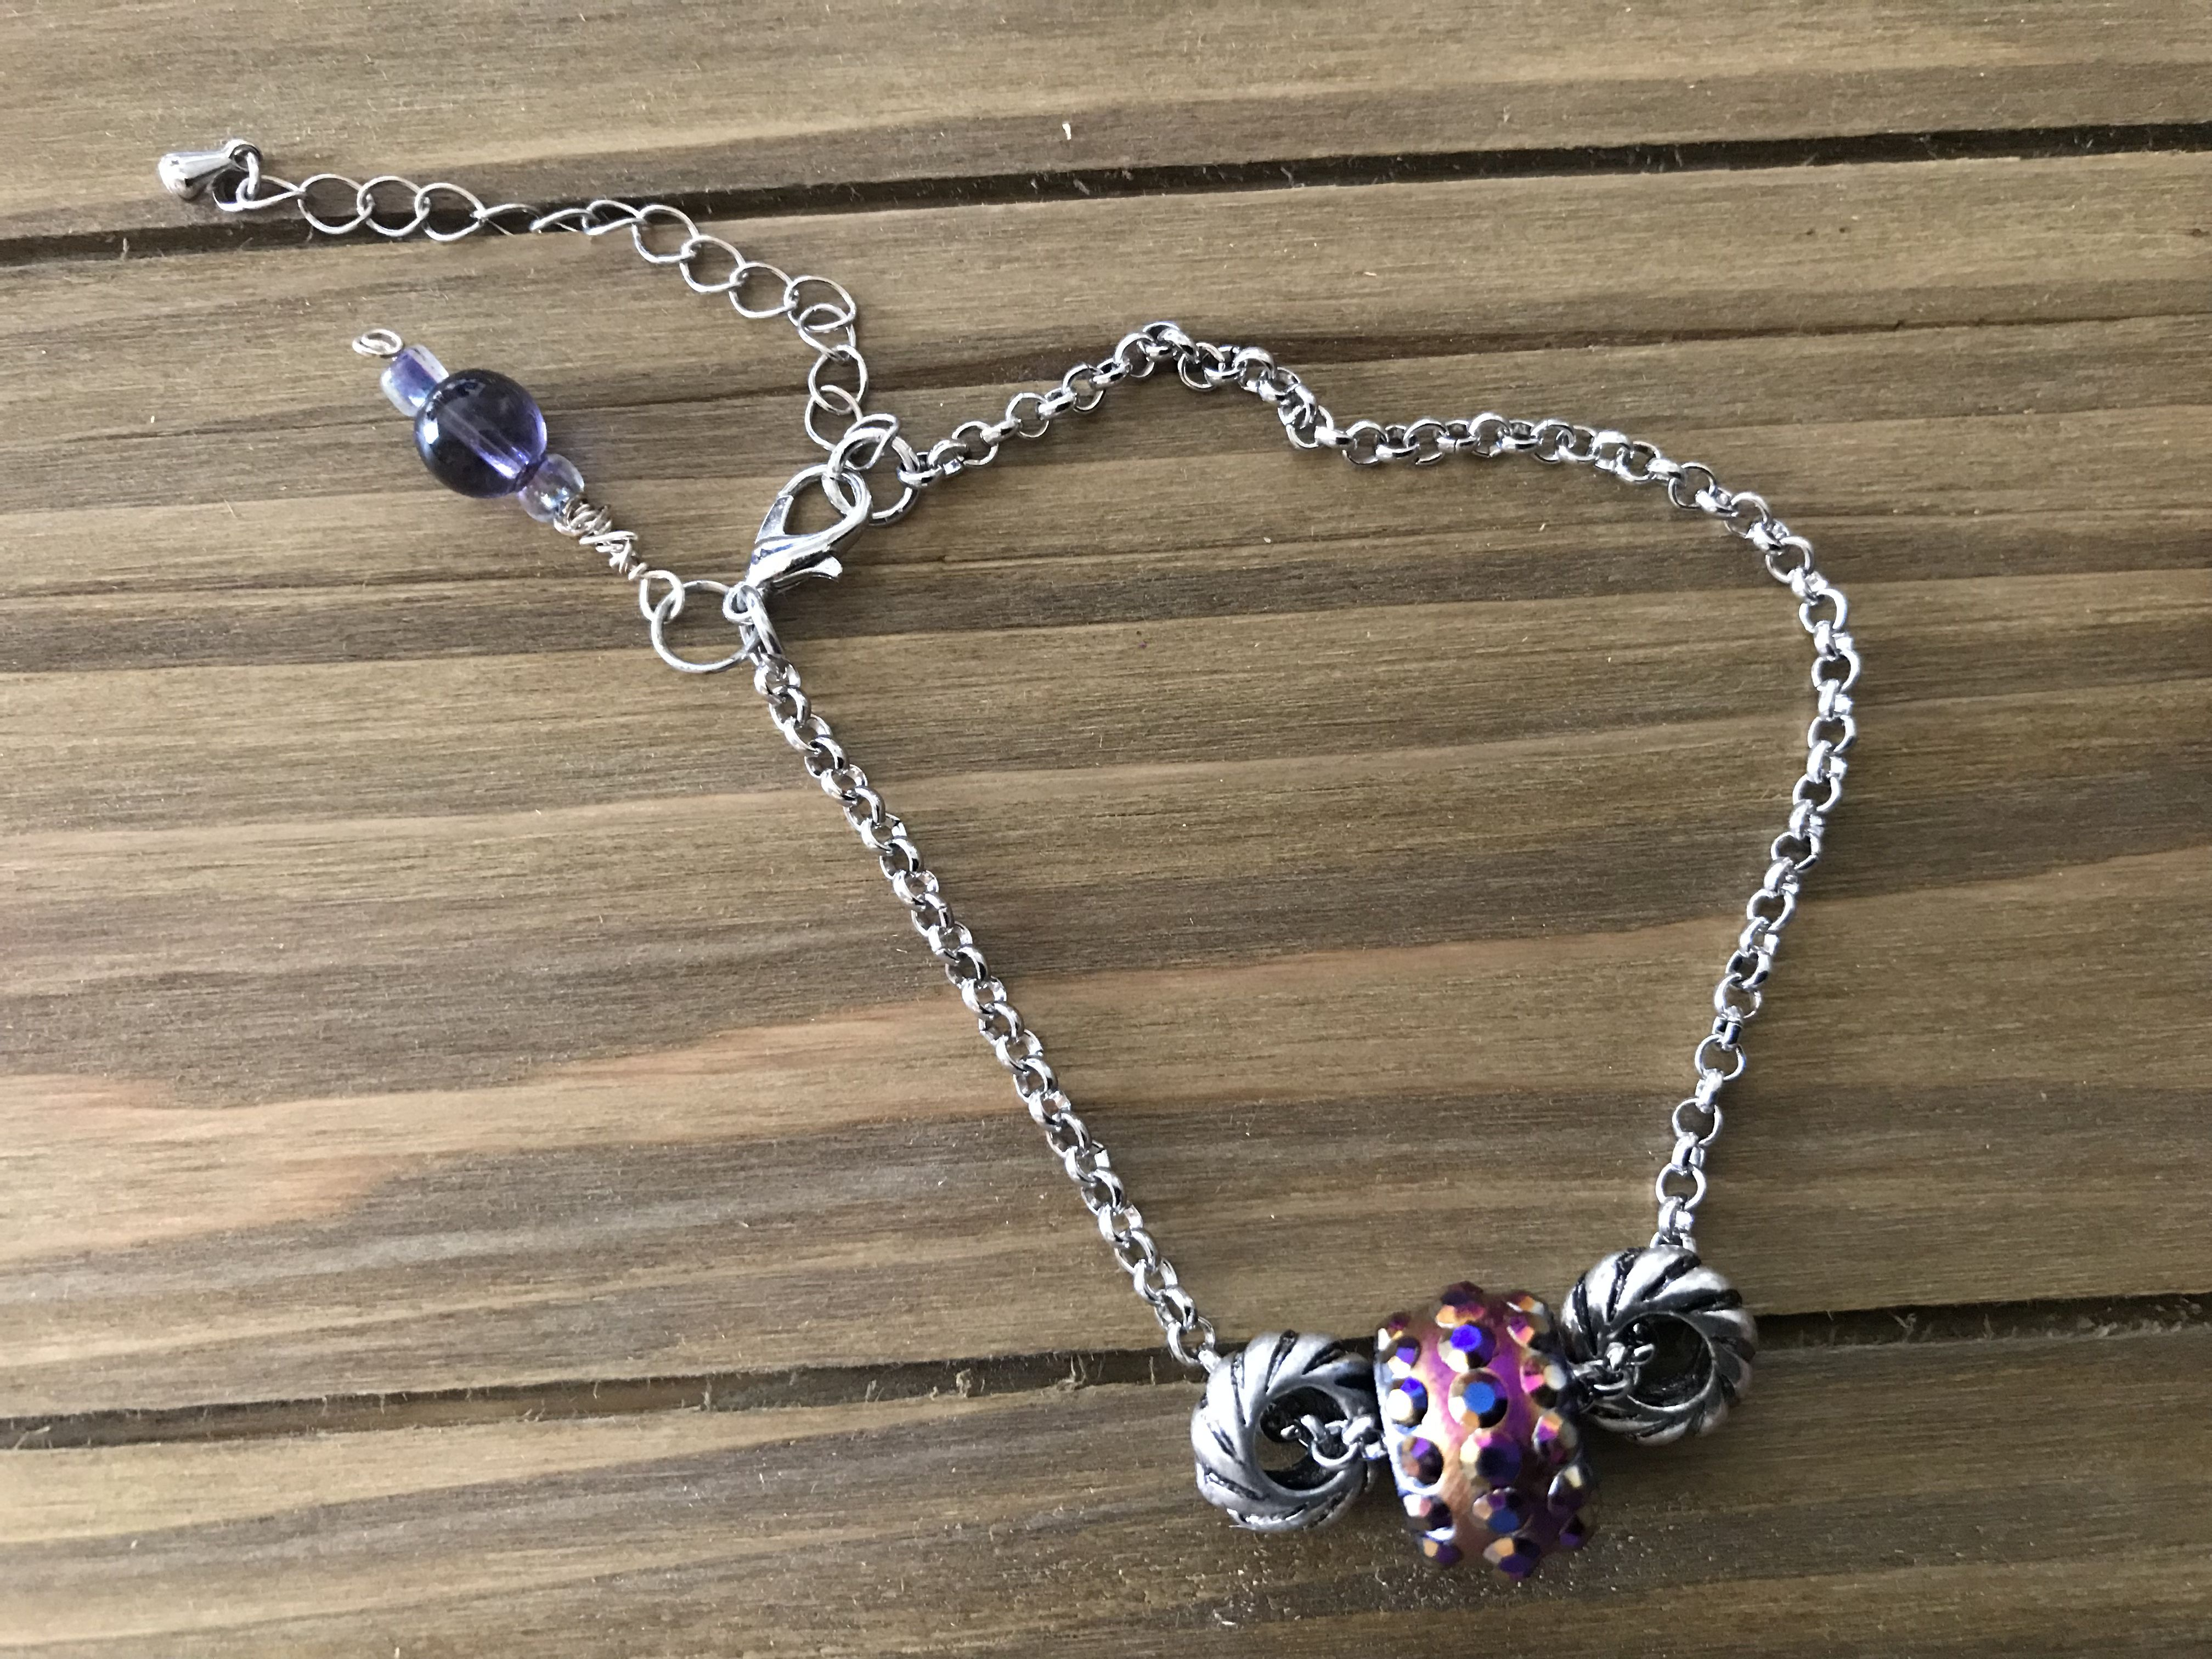 custommade madewithlove chainbracelets adjustable handmade silver stackable charms